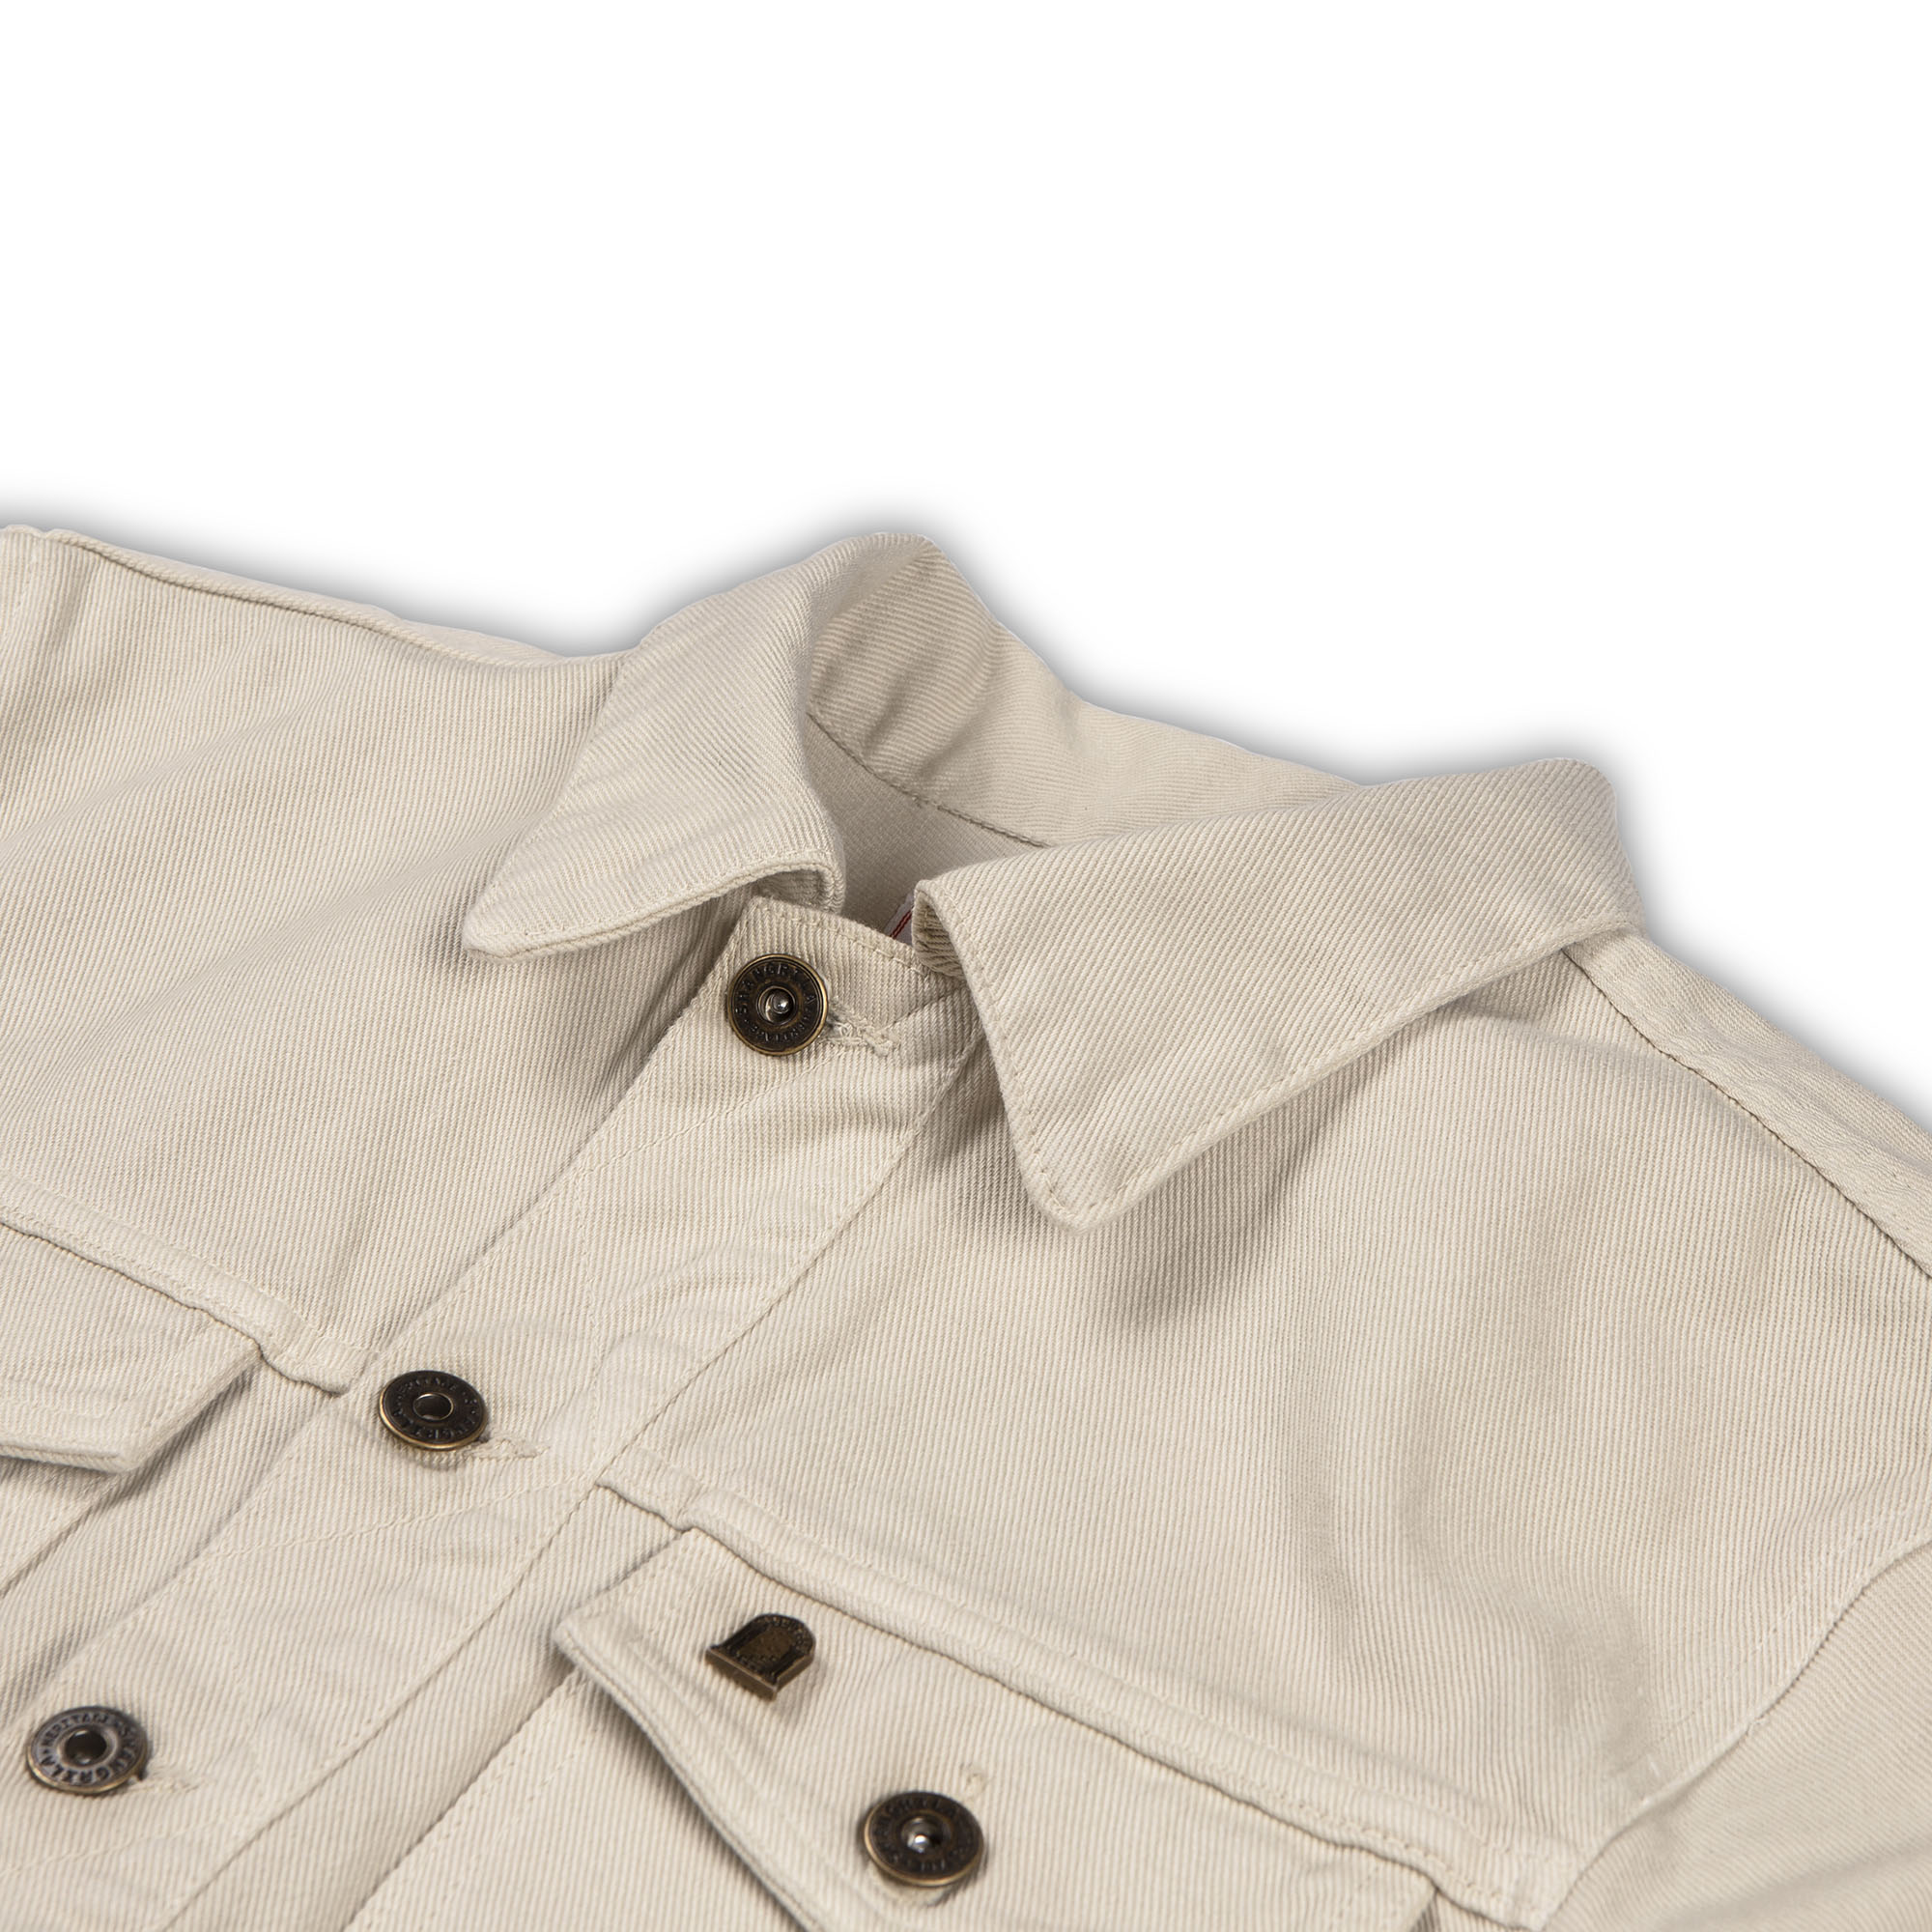 shangri-la-heritage-new-single-rider-ivory-canvas-jacket-still-life-collar